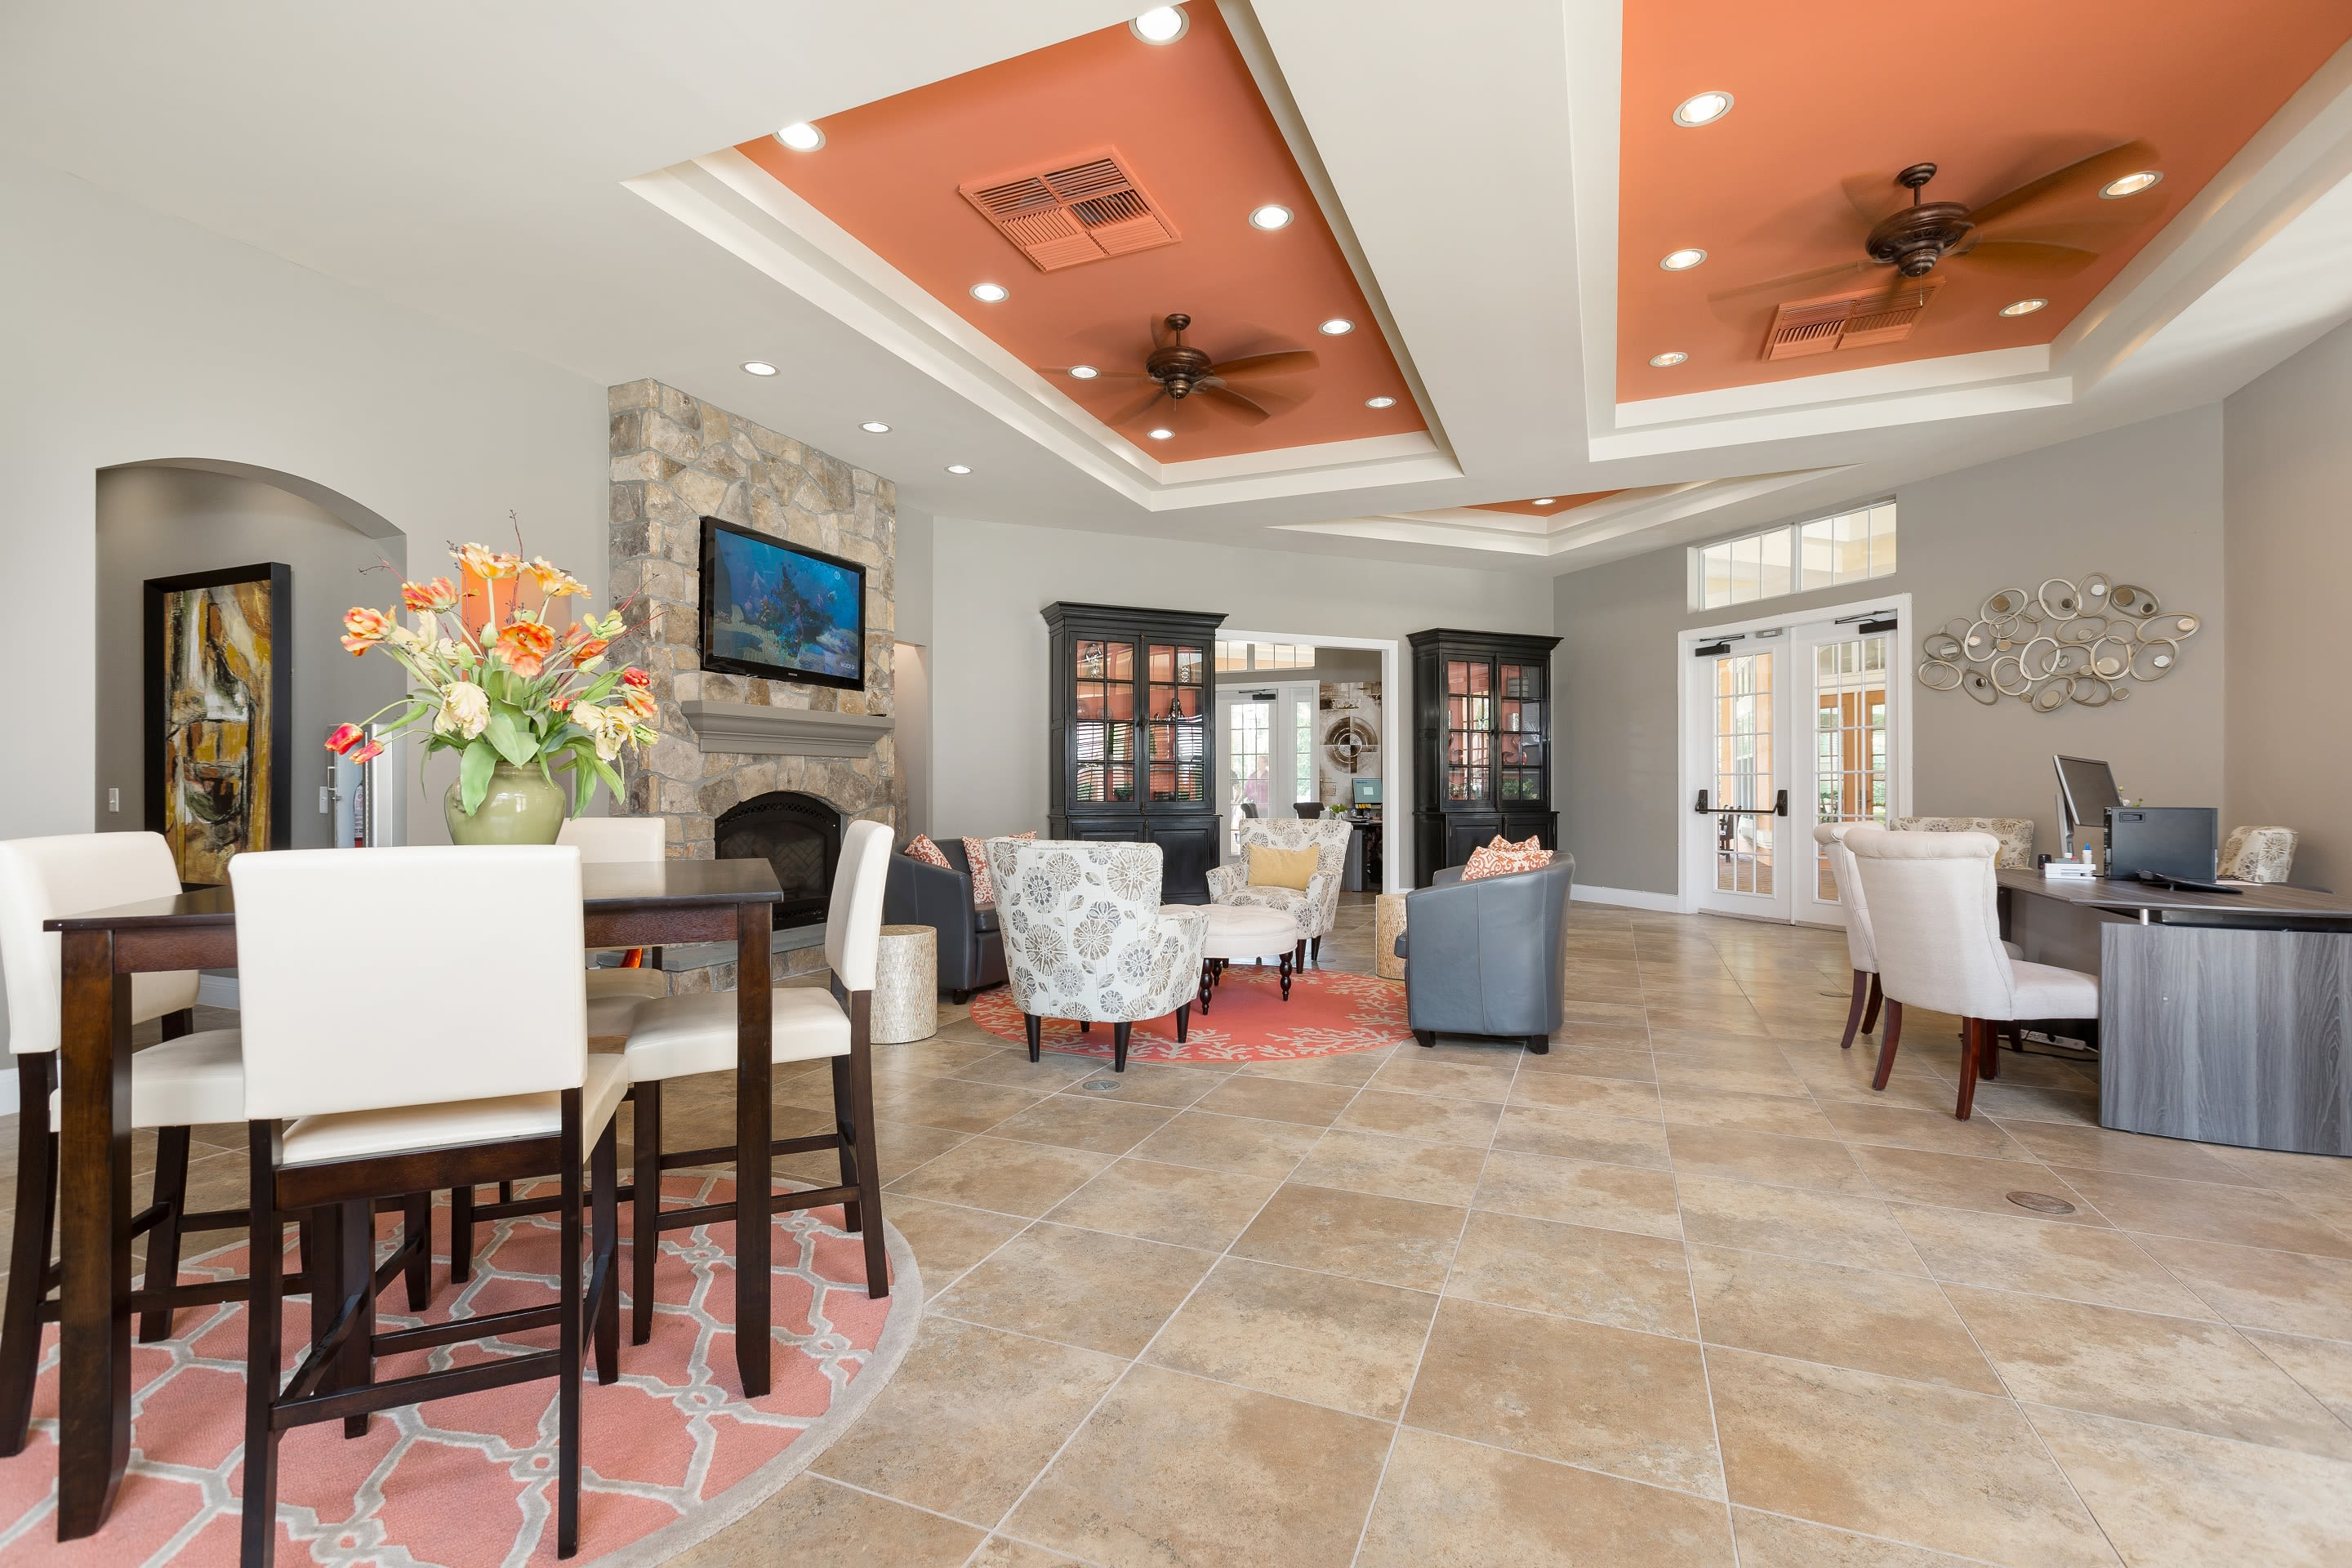 Common area with fireplace at The Aspect in Kissimmee, Florida